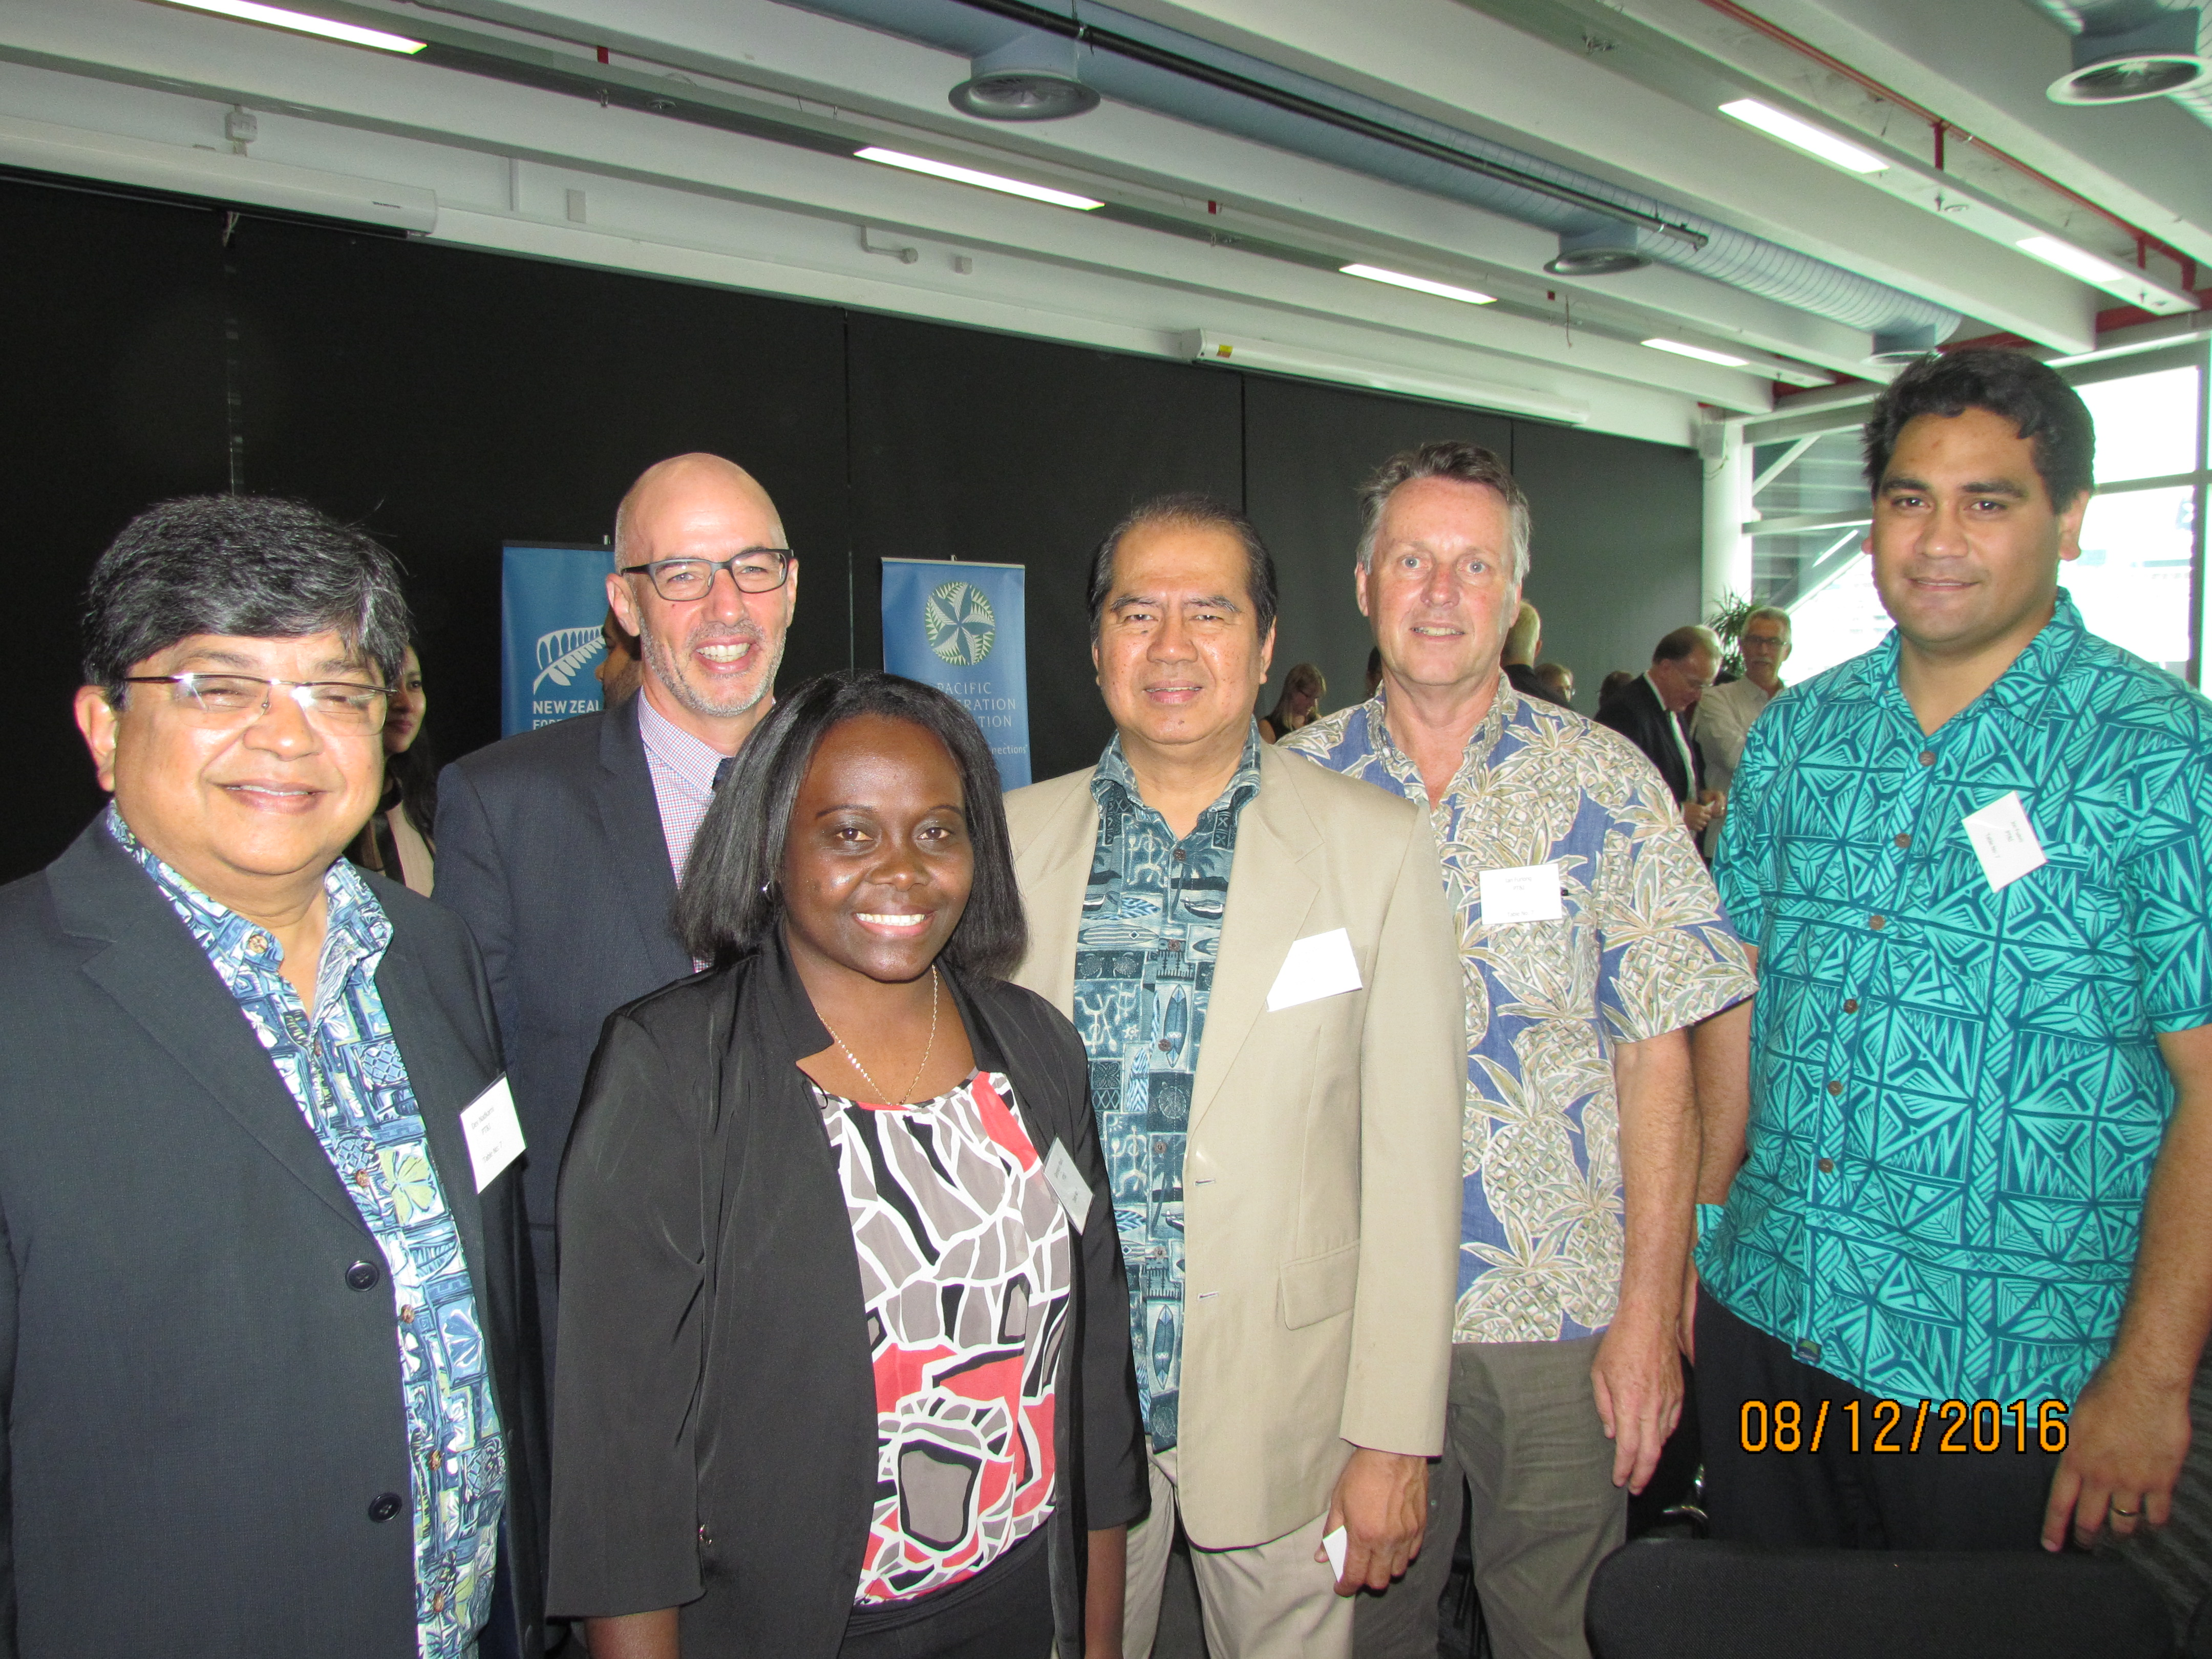 Mark Ramsden, NZ High Commissioner to Fiji (second from left) with the PT&I team (from left) Dev Nadkarni, Genevieve Mautu, Manuel Valdez, Ian Furlong and Joe Fuavao (not in picture Michael Greenslade and Eleanor Ikinofo).